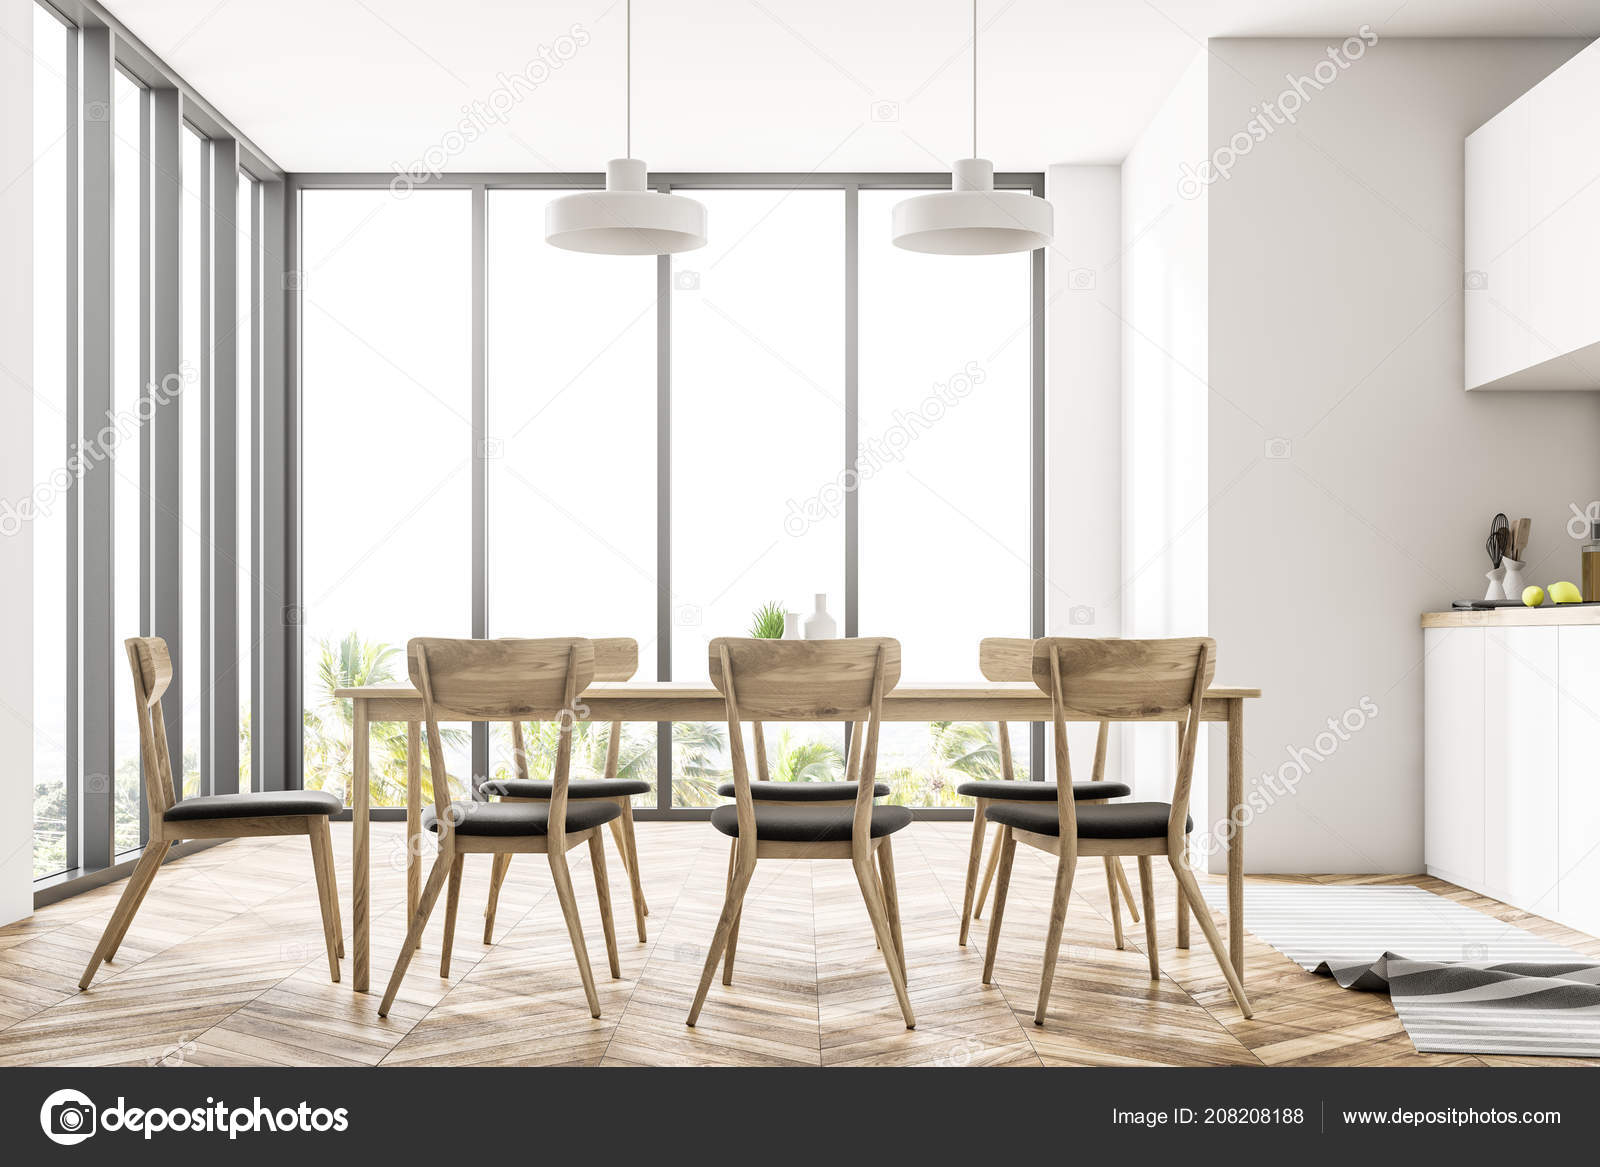 Dining Room And Kitchen Interior With White Walls, A Wooden Floor, A Long  Table With Chairs And White Countertops. Panoramic Windows.